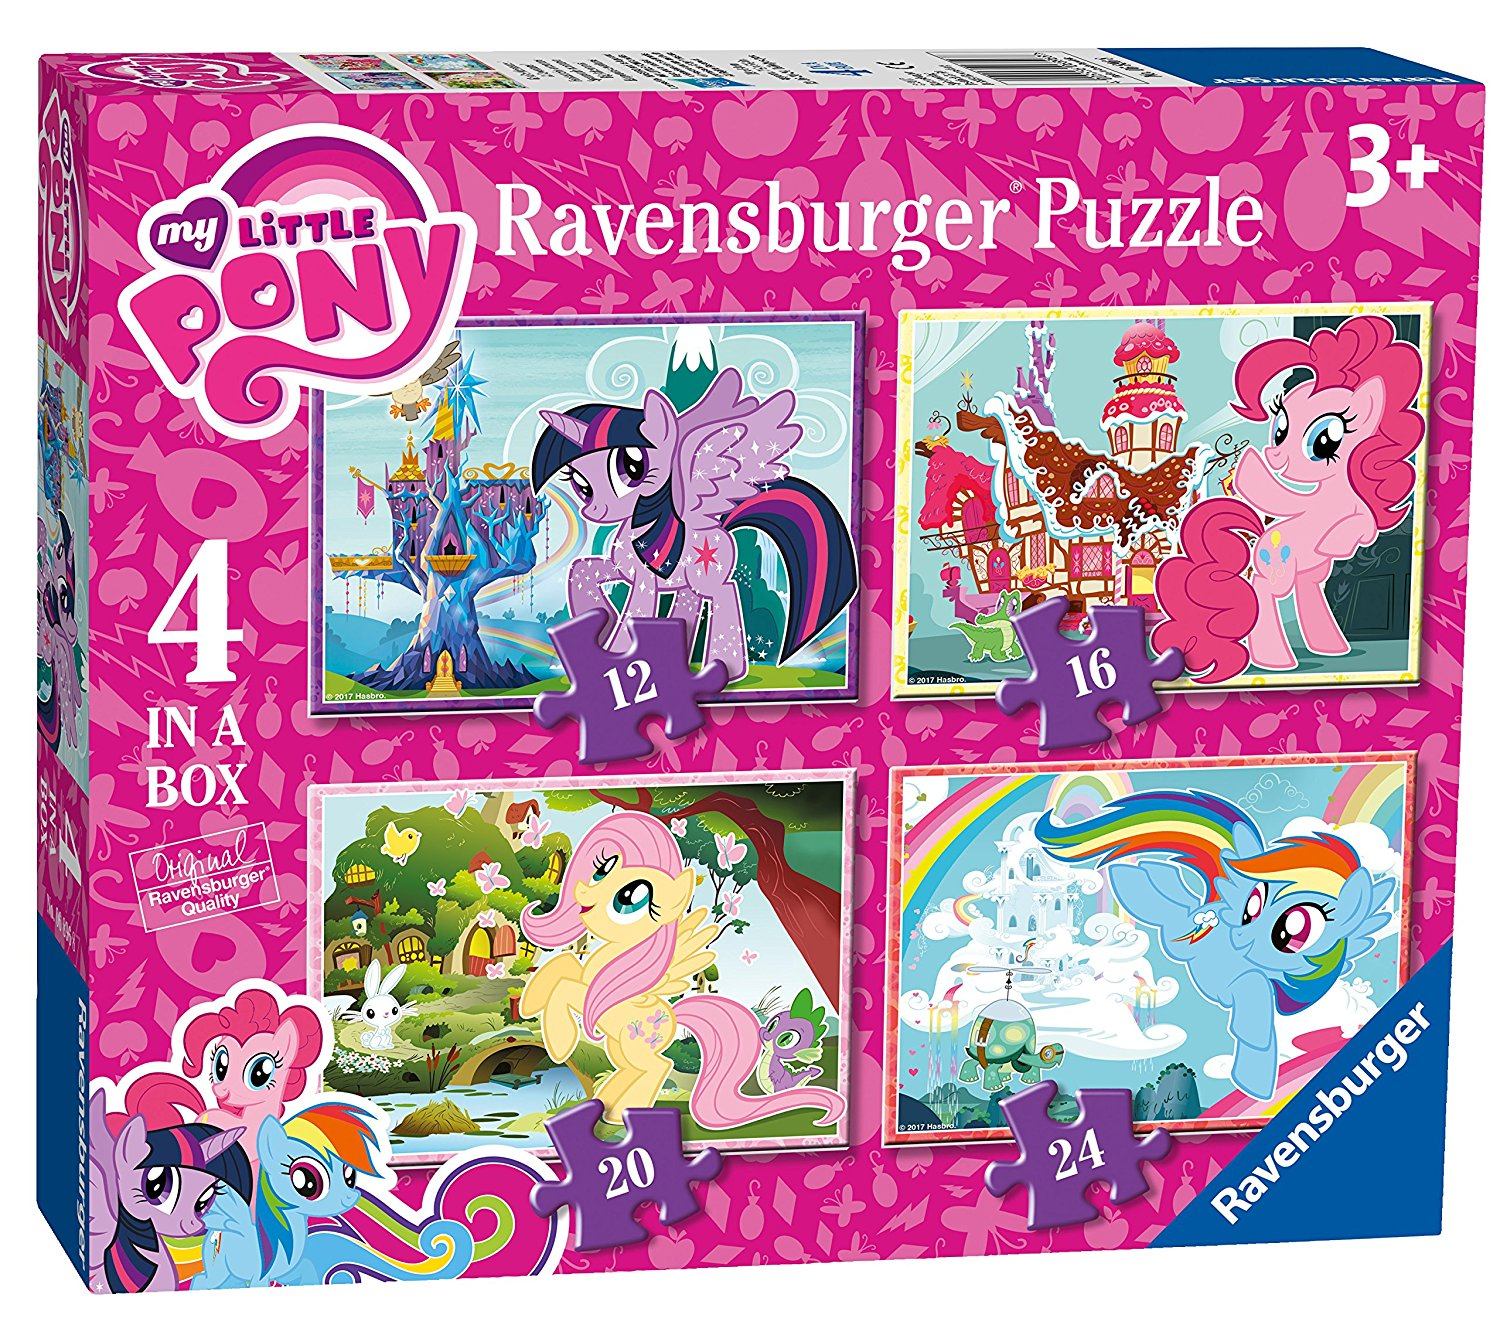 My Little Pony, 4 in Box, 12pc, 16pc, 20pc & 24pc